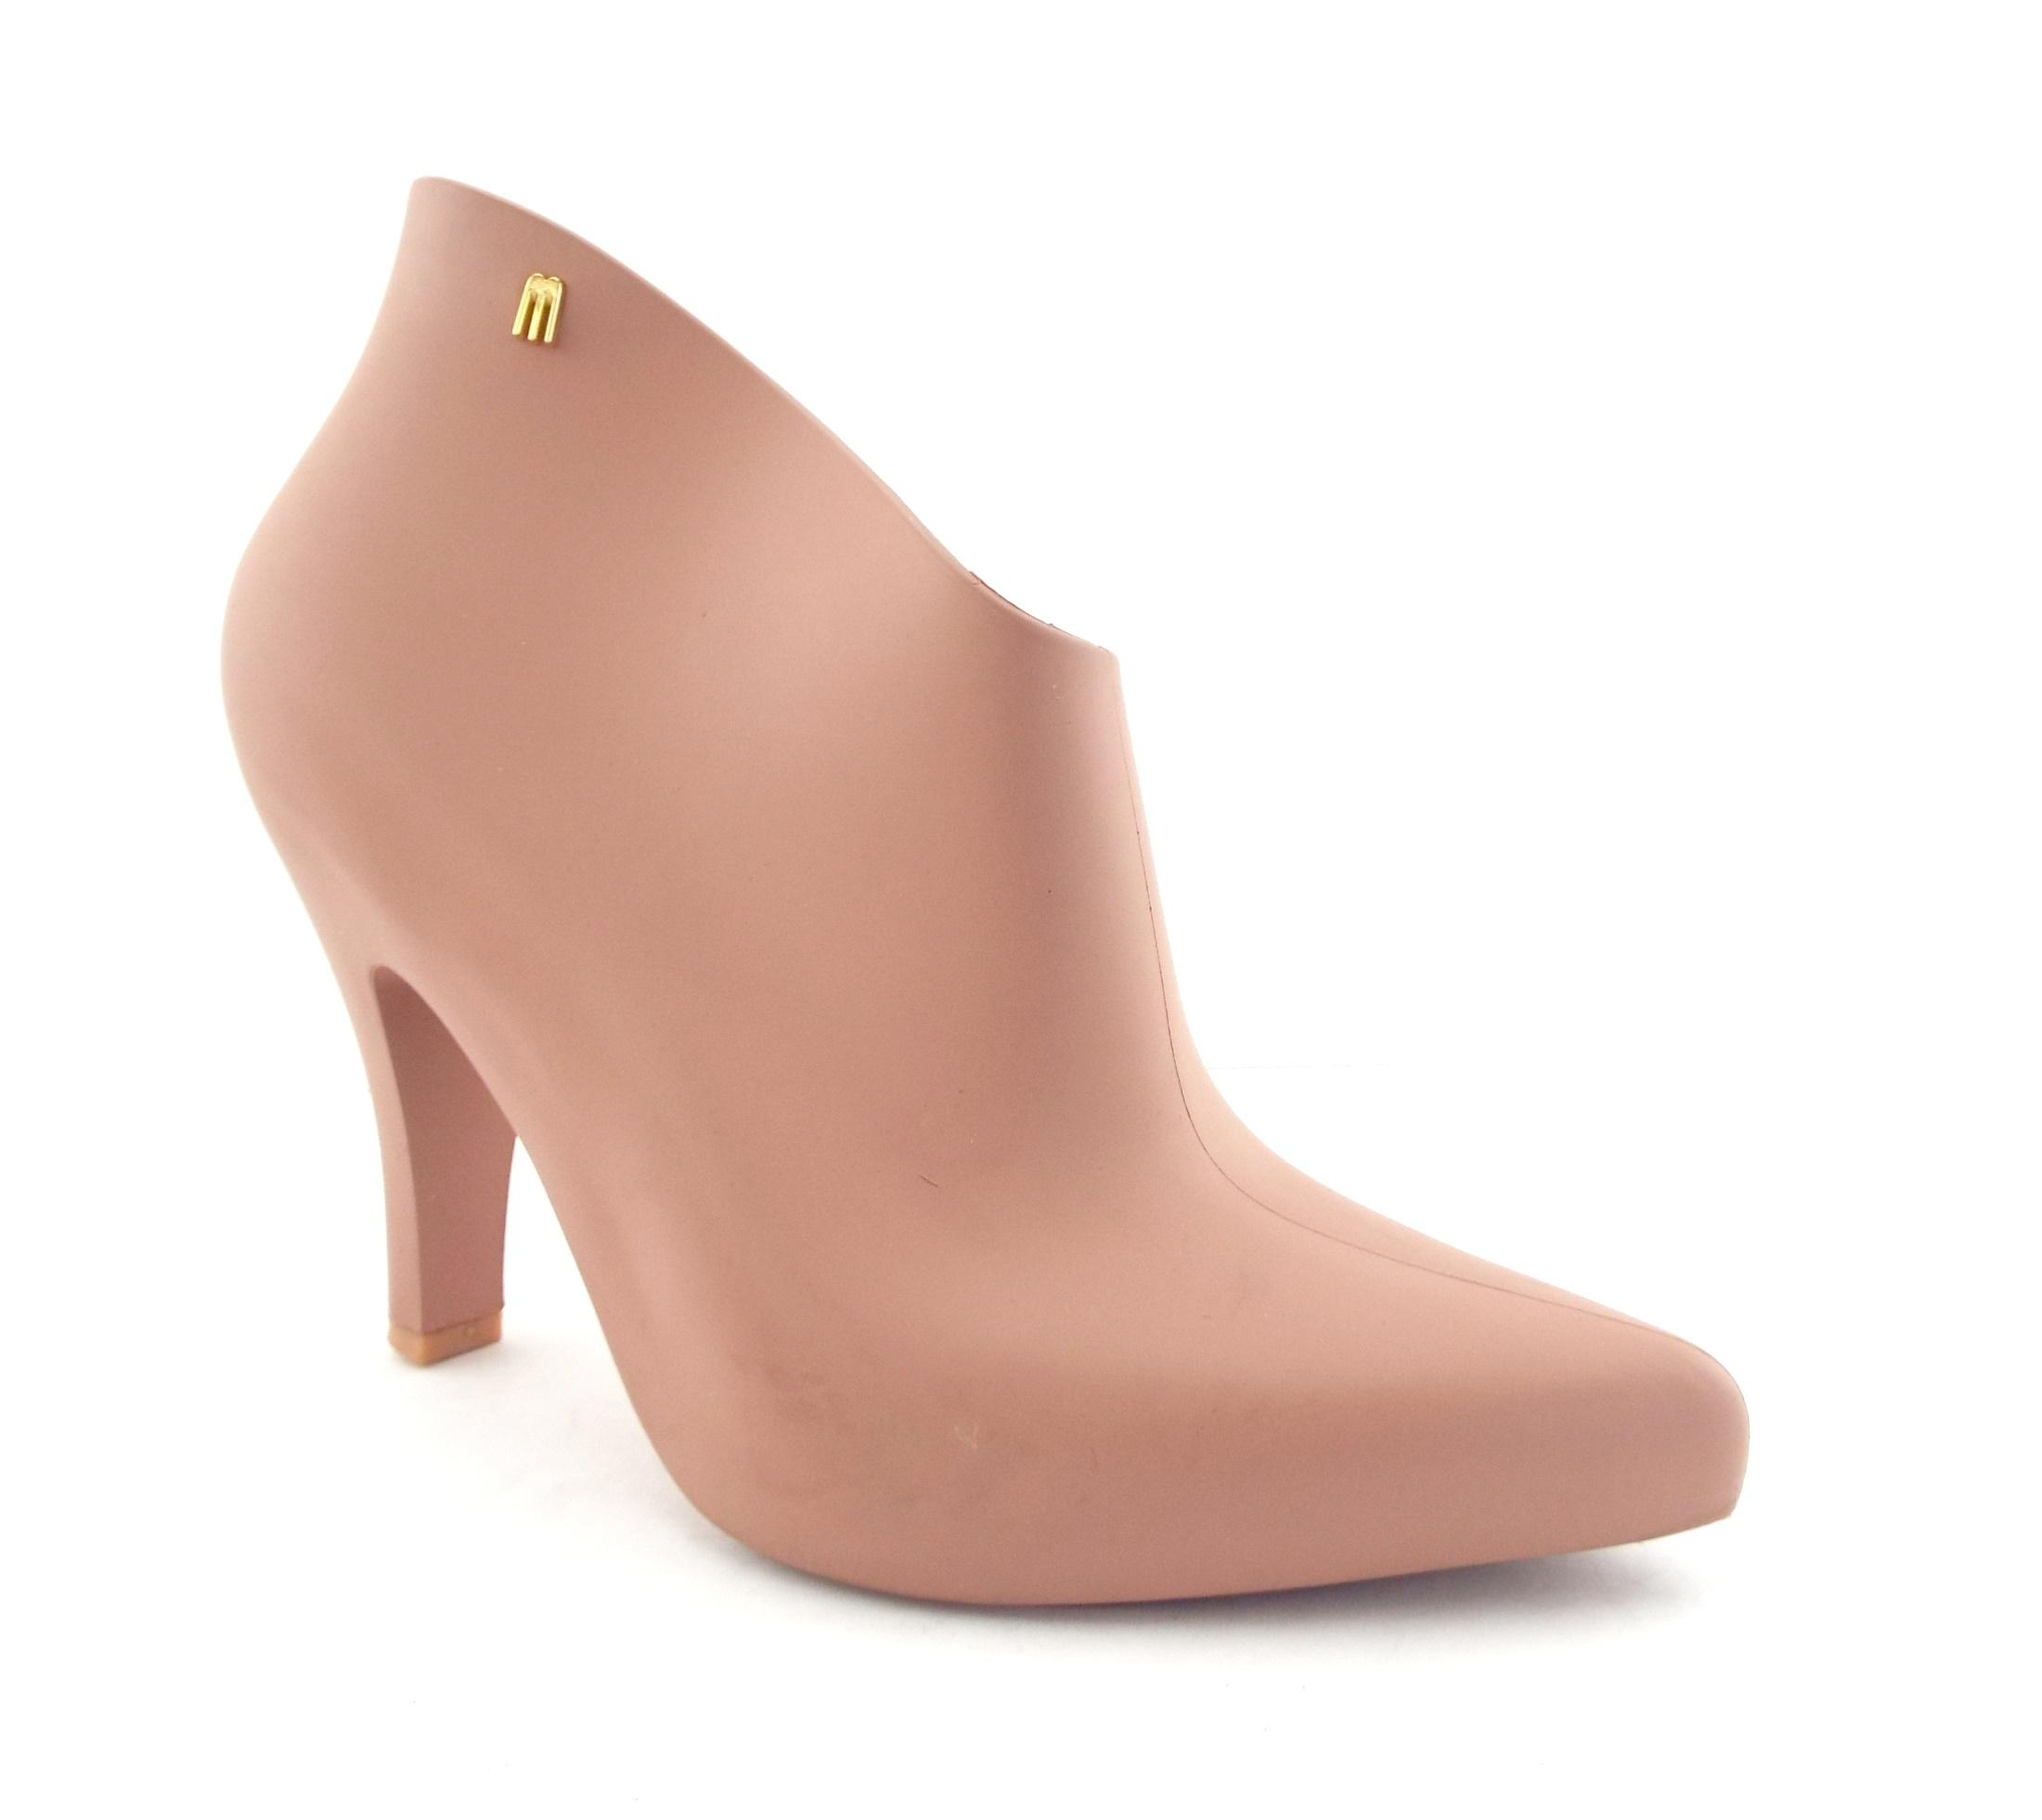 Melissa Nude Jelly Rubber Cut-out Ankle Boots/Booties Size US 9 Regular (M, B)